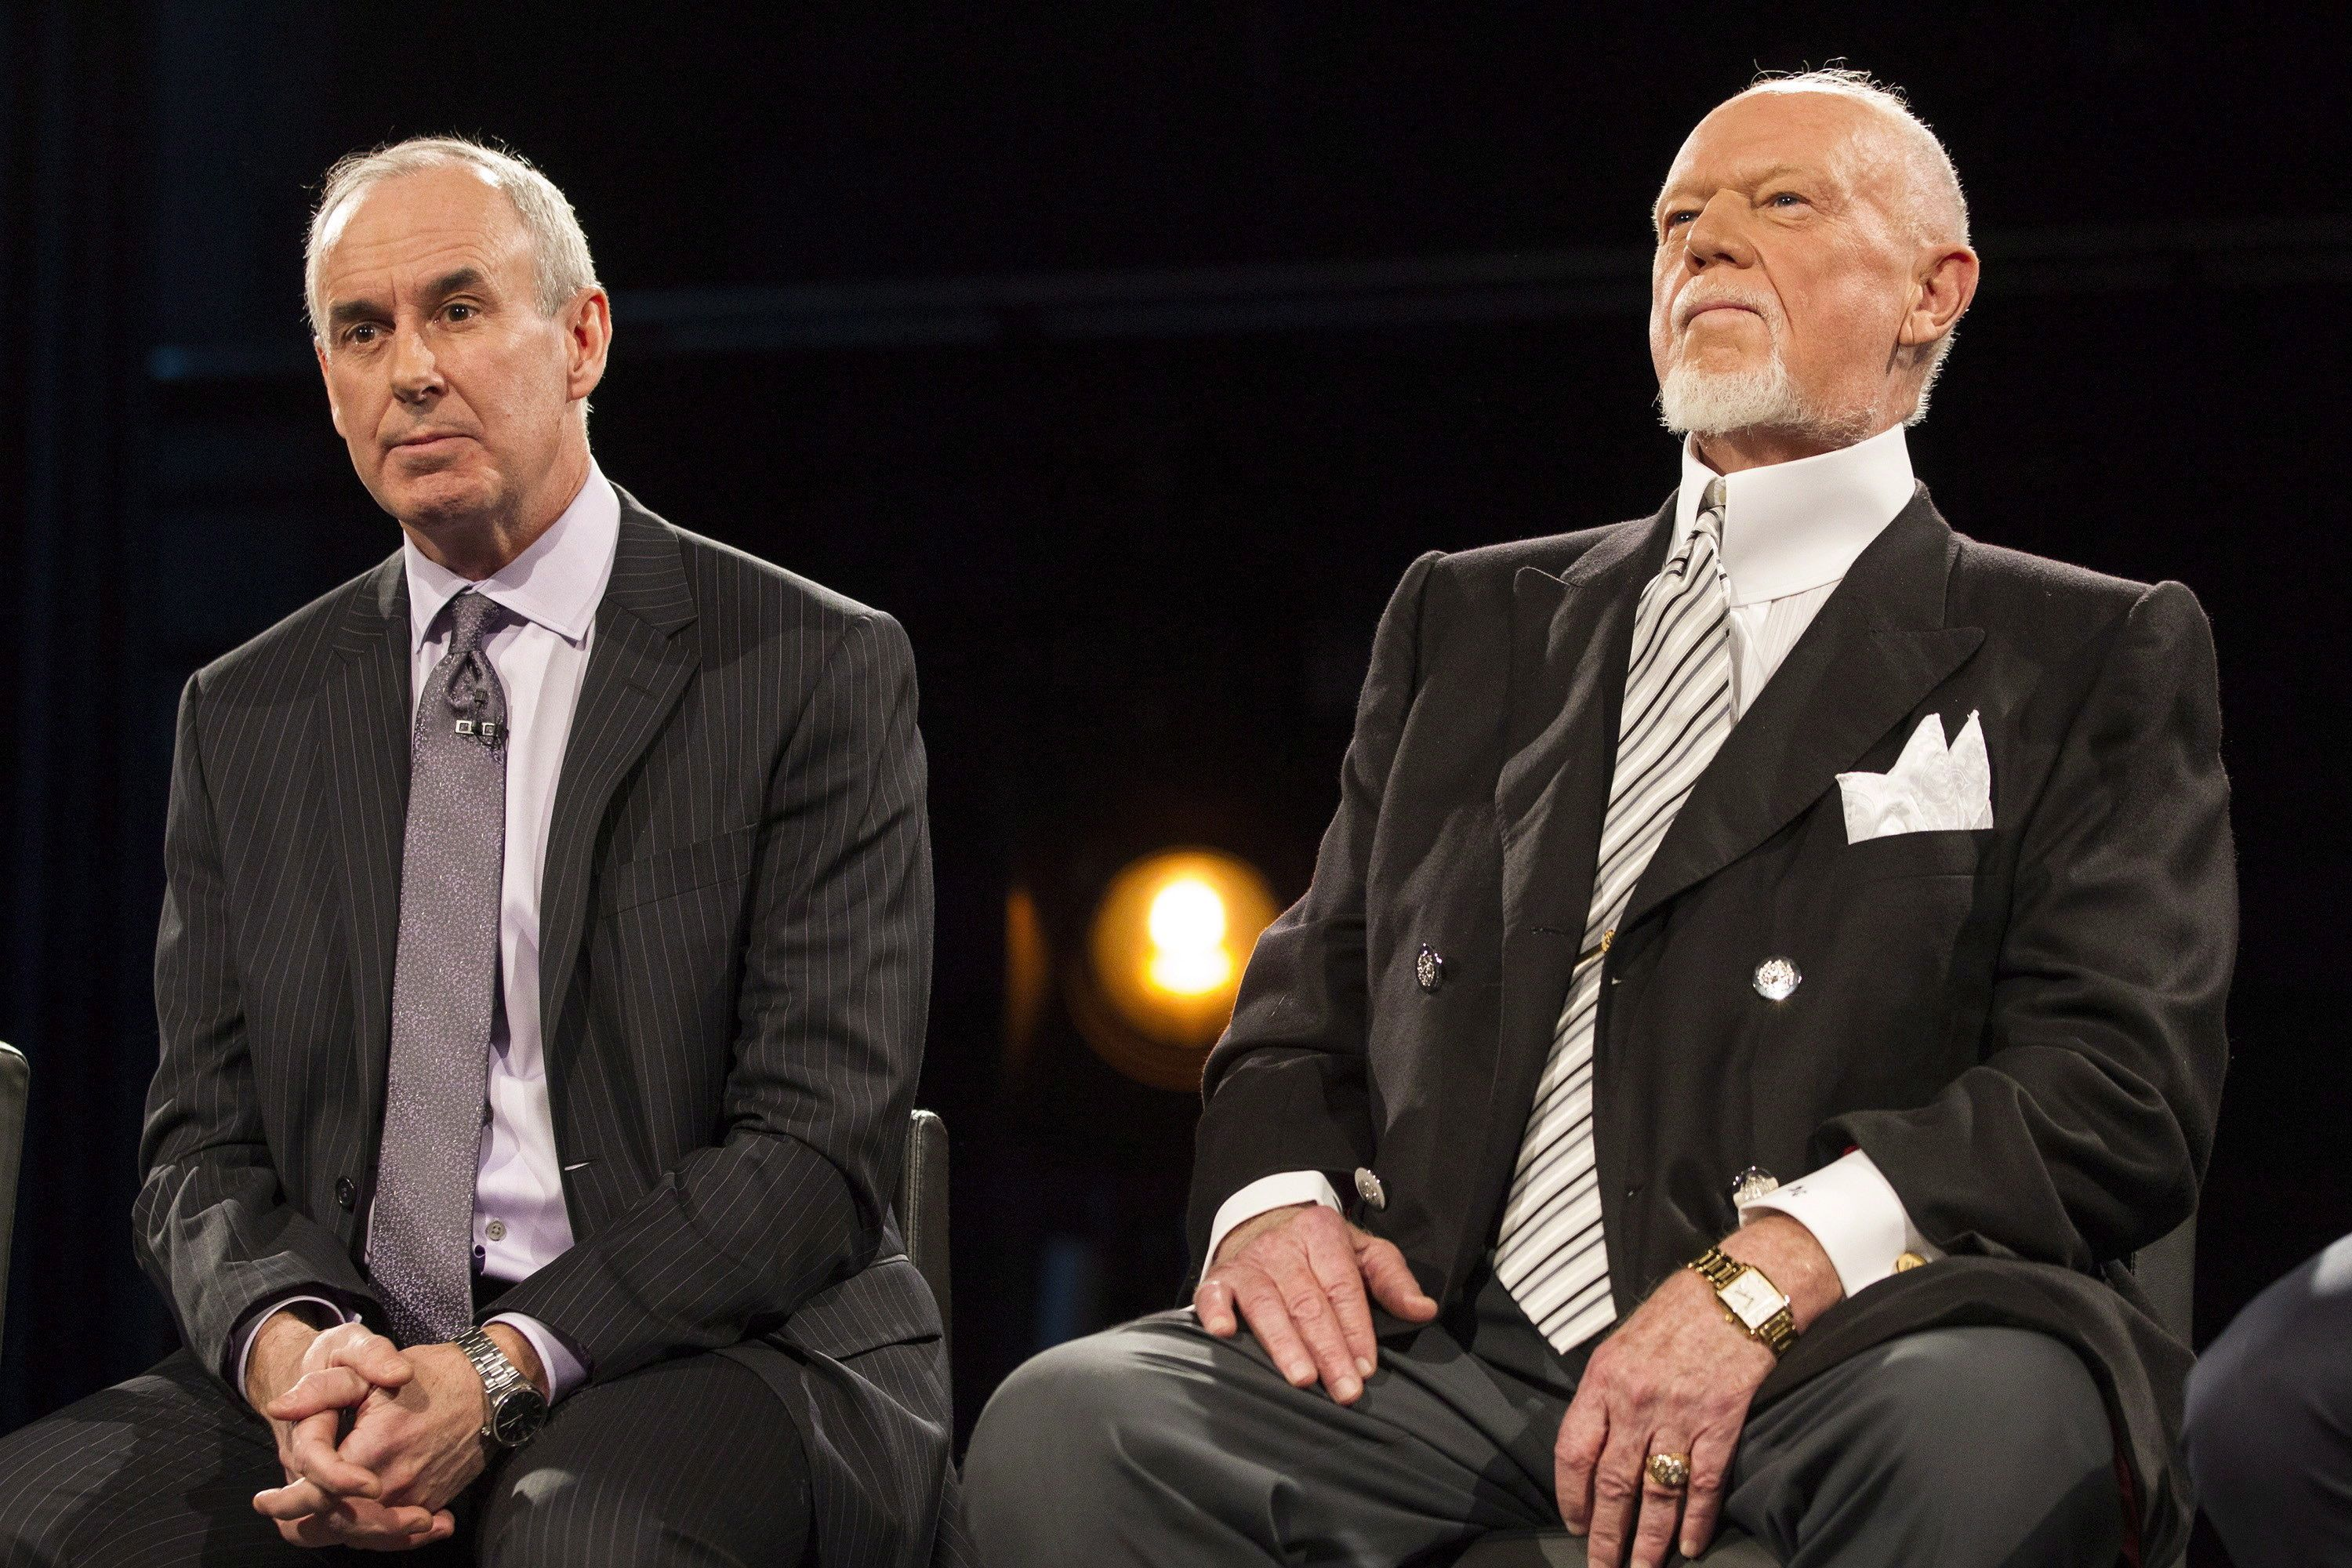 Bettman Declines to Weigh in on Cherry, Says MacLean 'Spoke From the Heart'